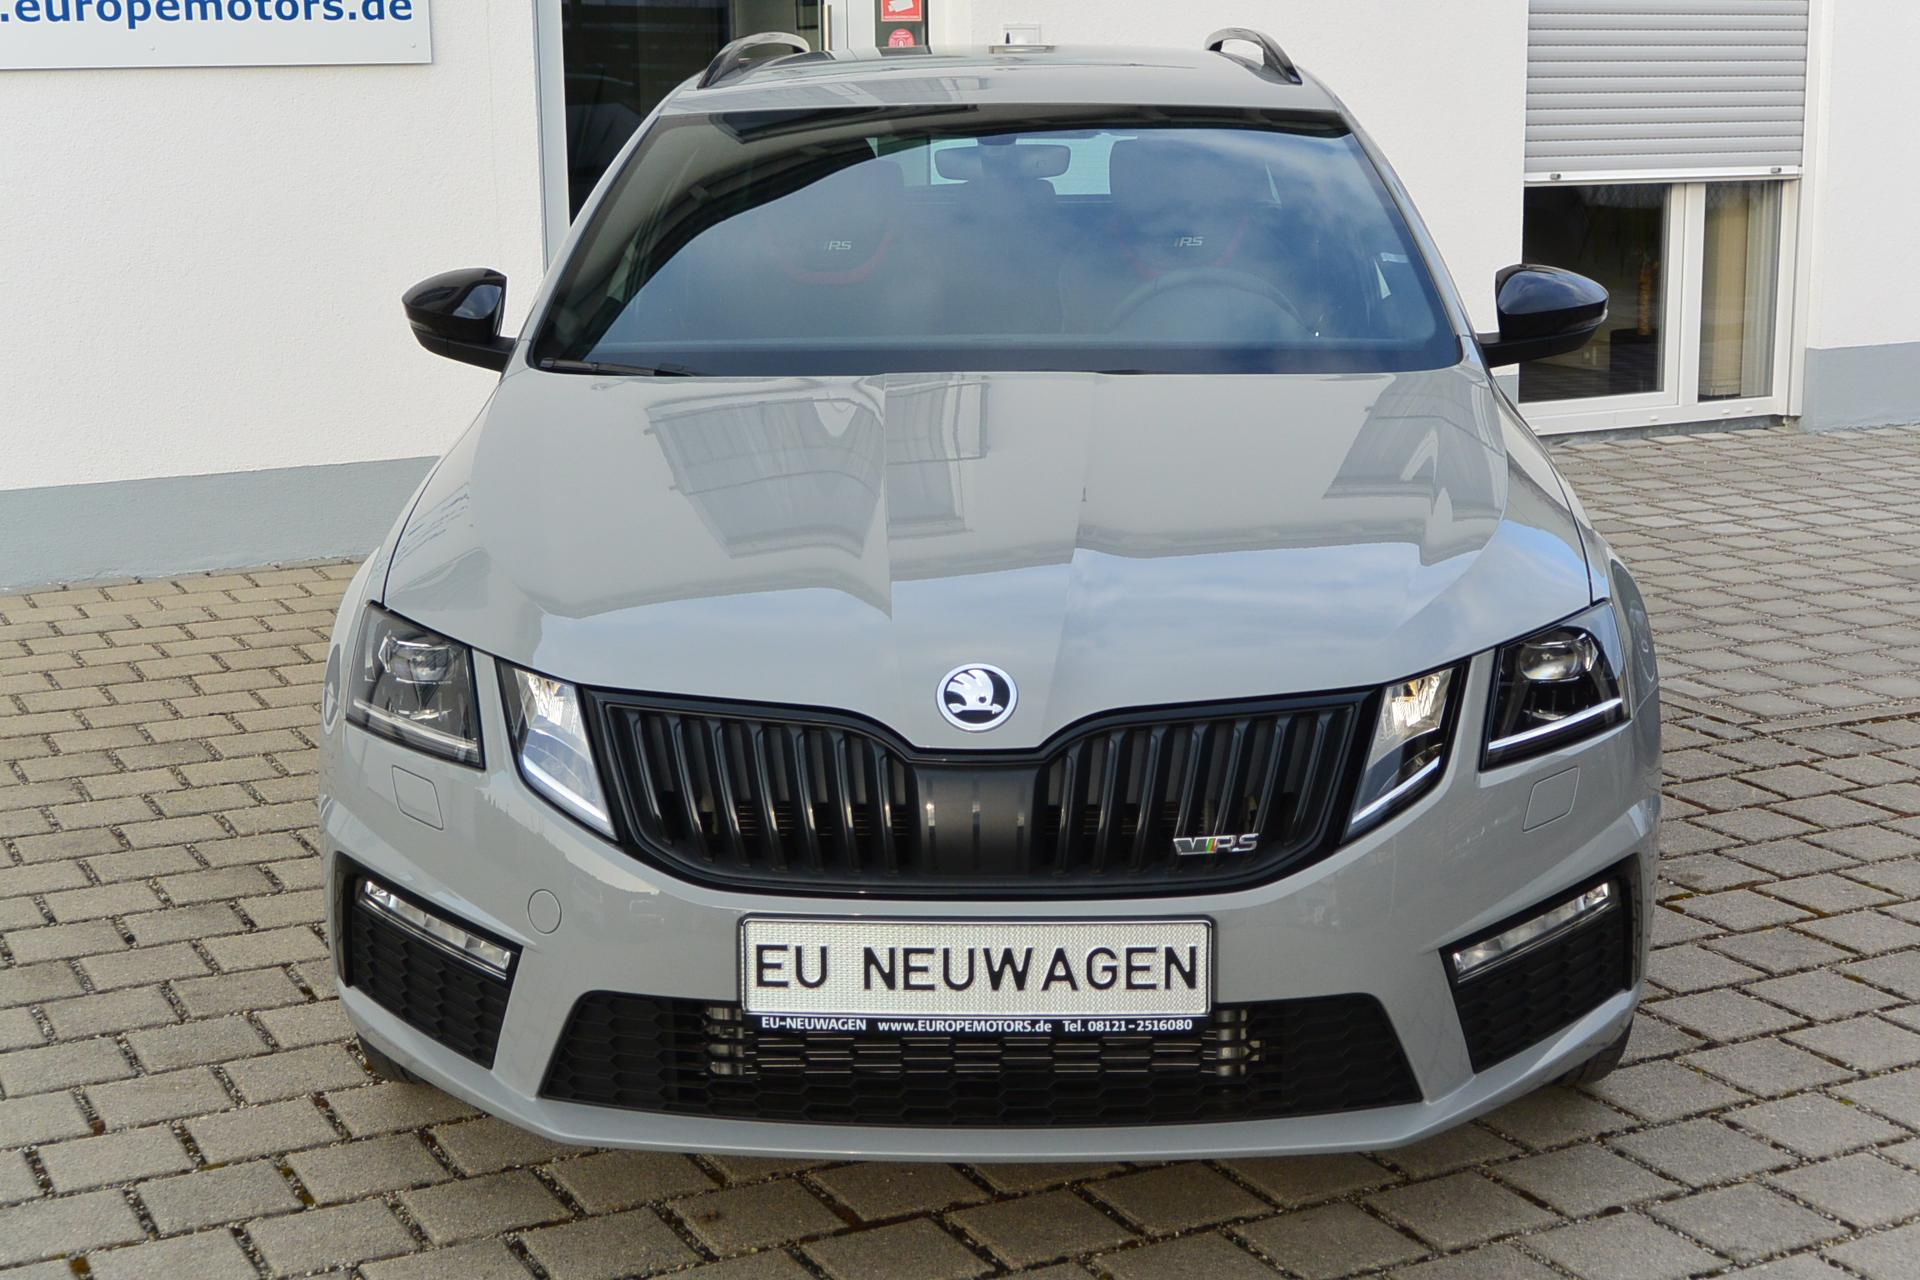 skoda octavia rs combi 2 0 tsi 180 kw 245 ps reimport eu. Black Bedroom Furniture Sets. Home Design Ideas